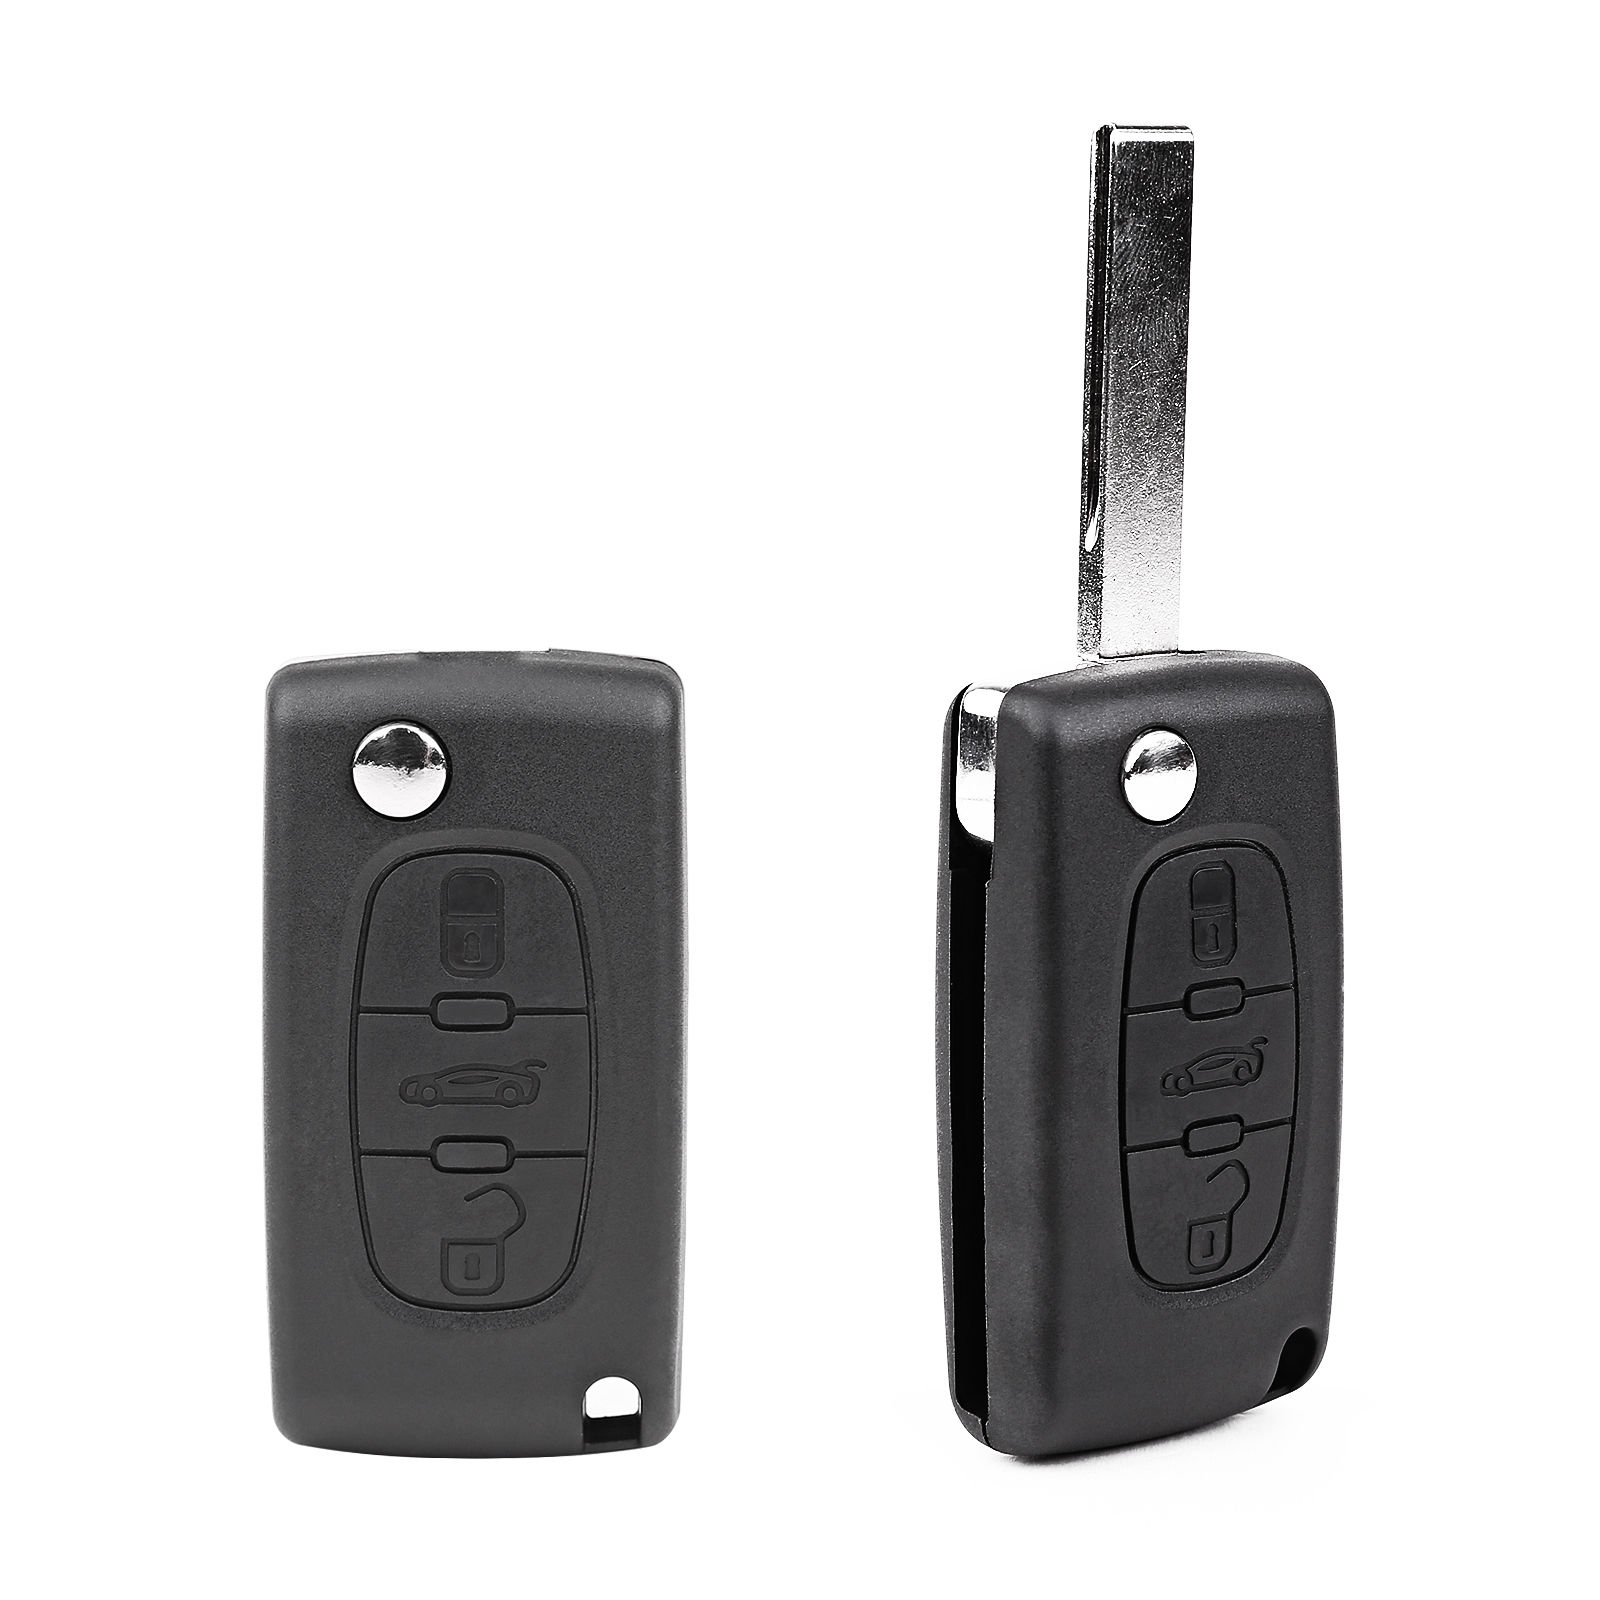 3 Buttons Folding Remote Key Shell Case Protection Cover Replacement For PEUGEOT 207 307 407 308 607 Key Shell Fitting